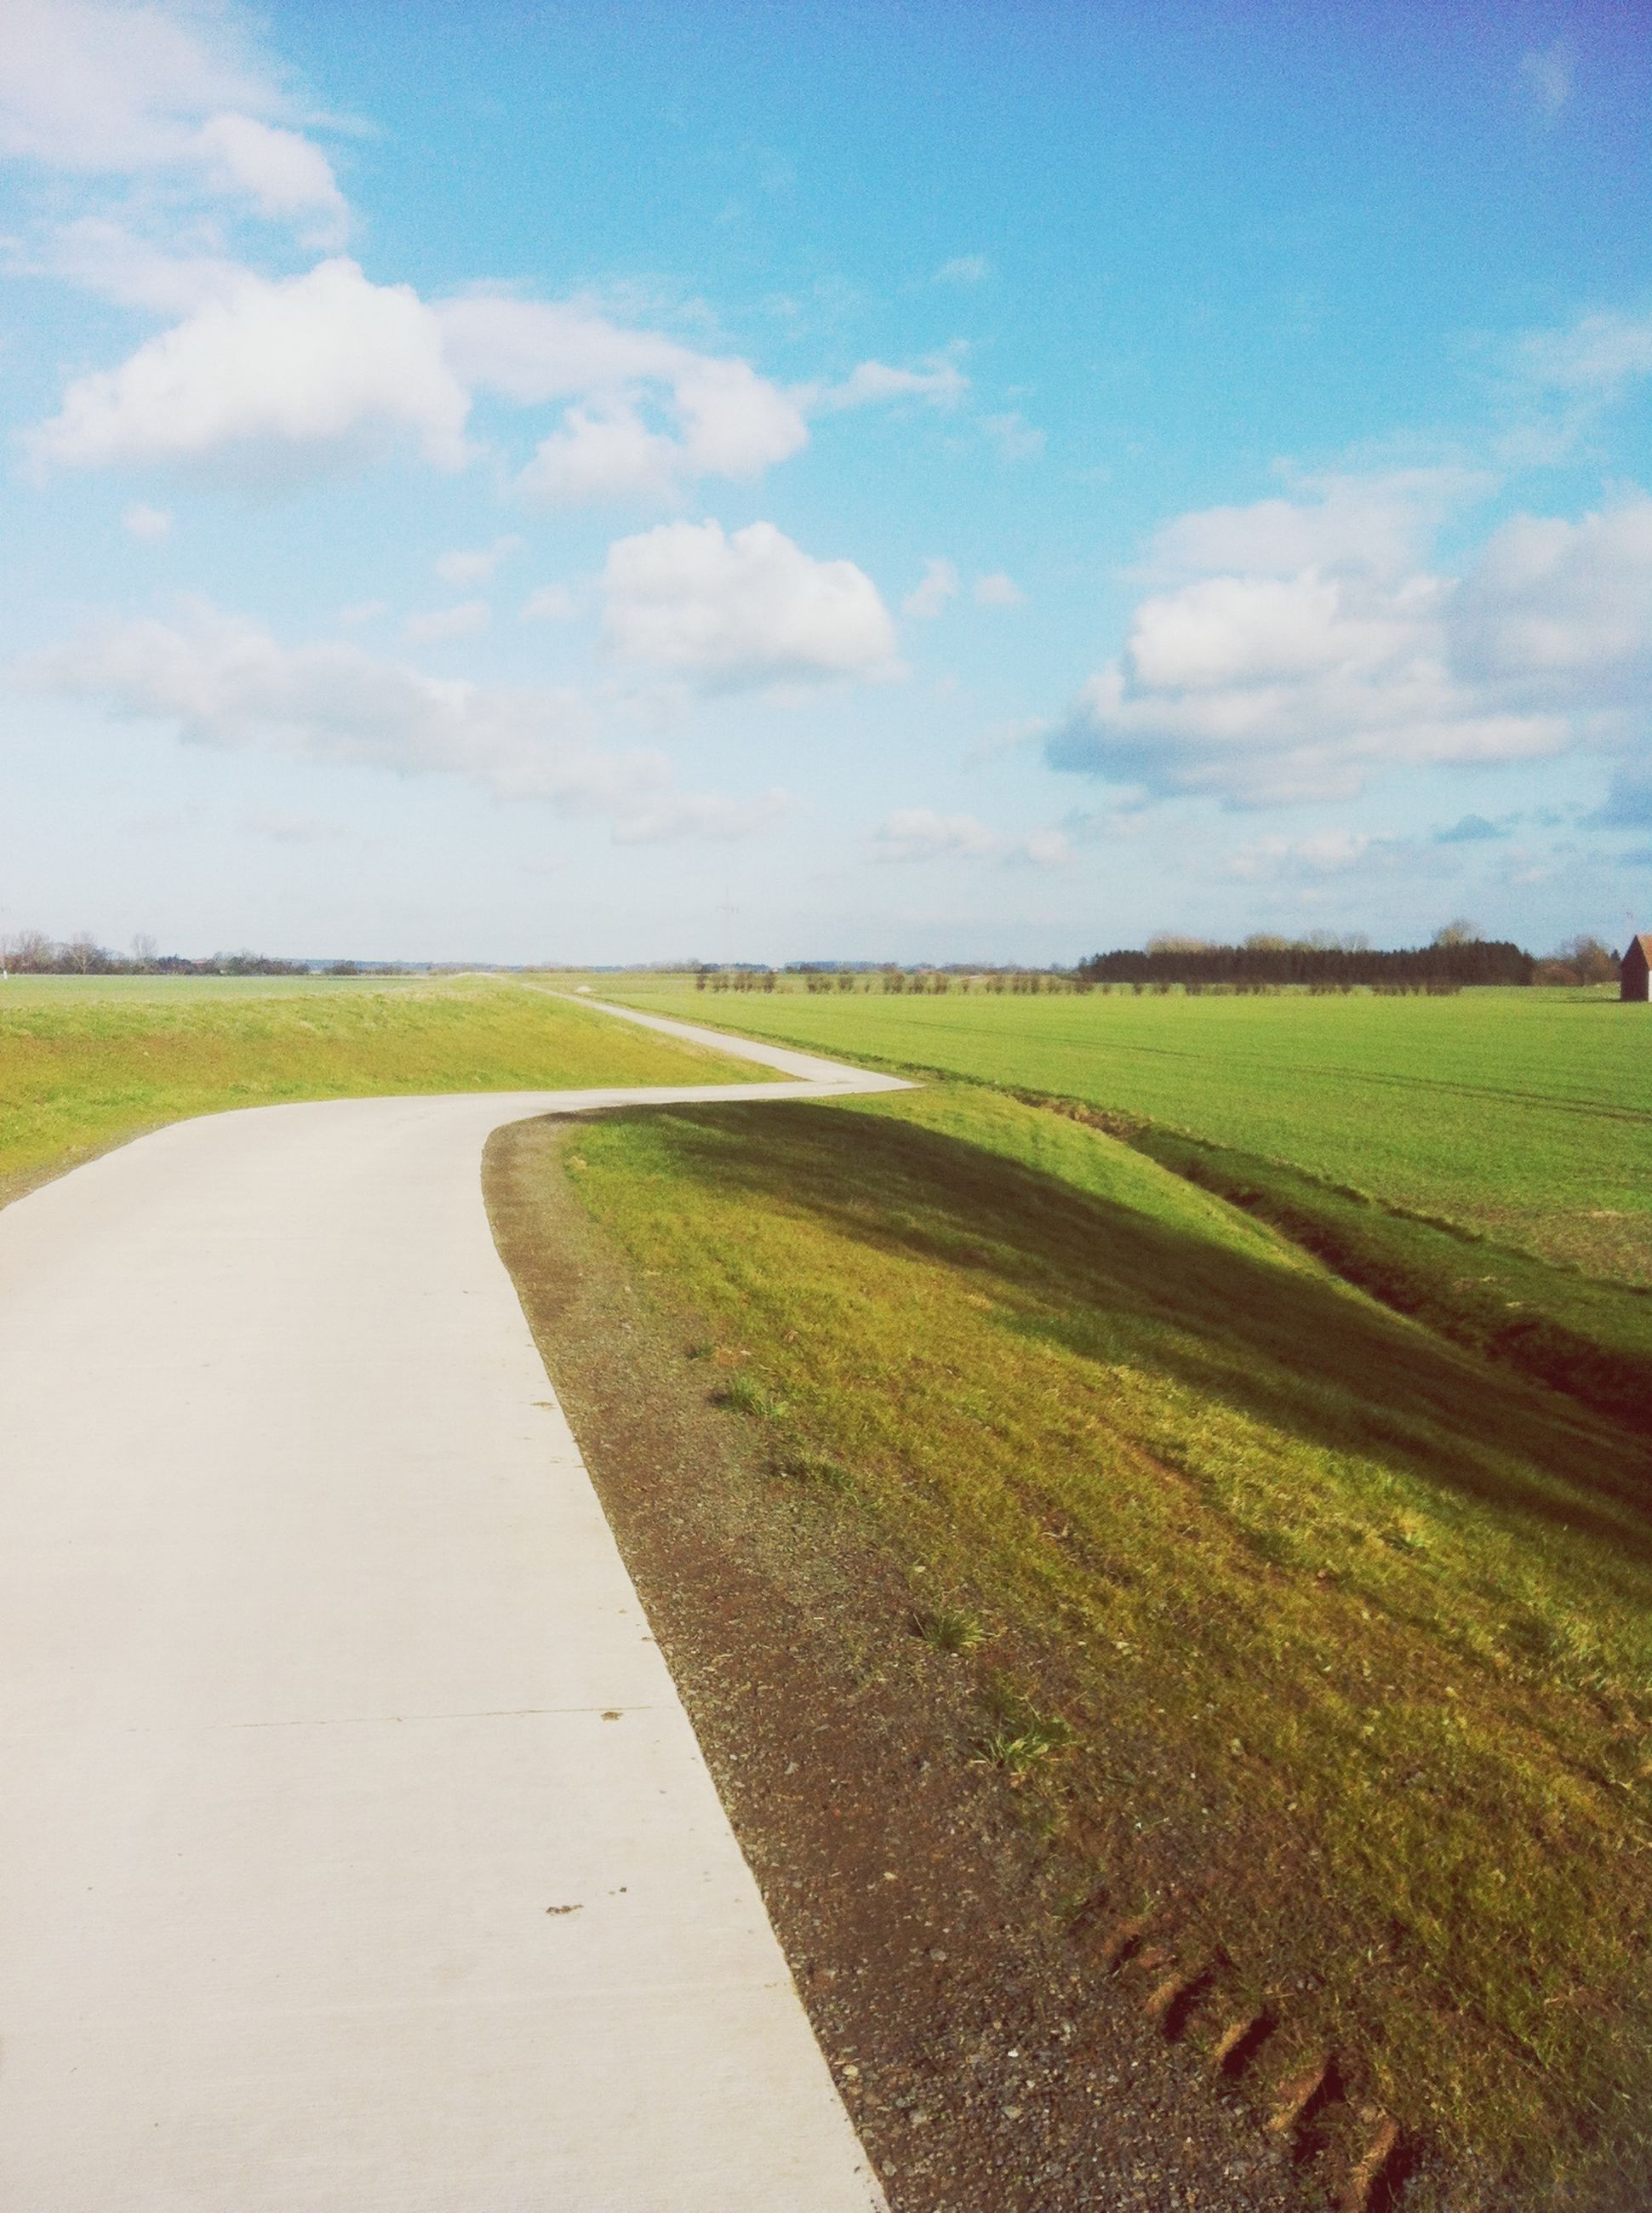 sky, landscape, grass, tranquil scene, tranquility, field, the way forward, scenics, rural scene, cloud - sky, nature, beauty in nature, road, cloud, agriculture, green color, diminishing perspective, horizon over land, dirt road, vanishing point